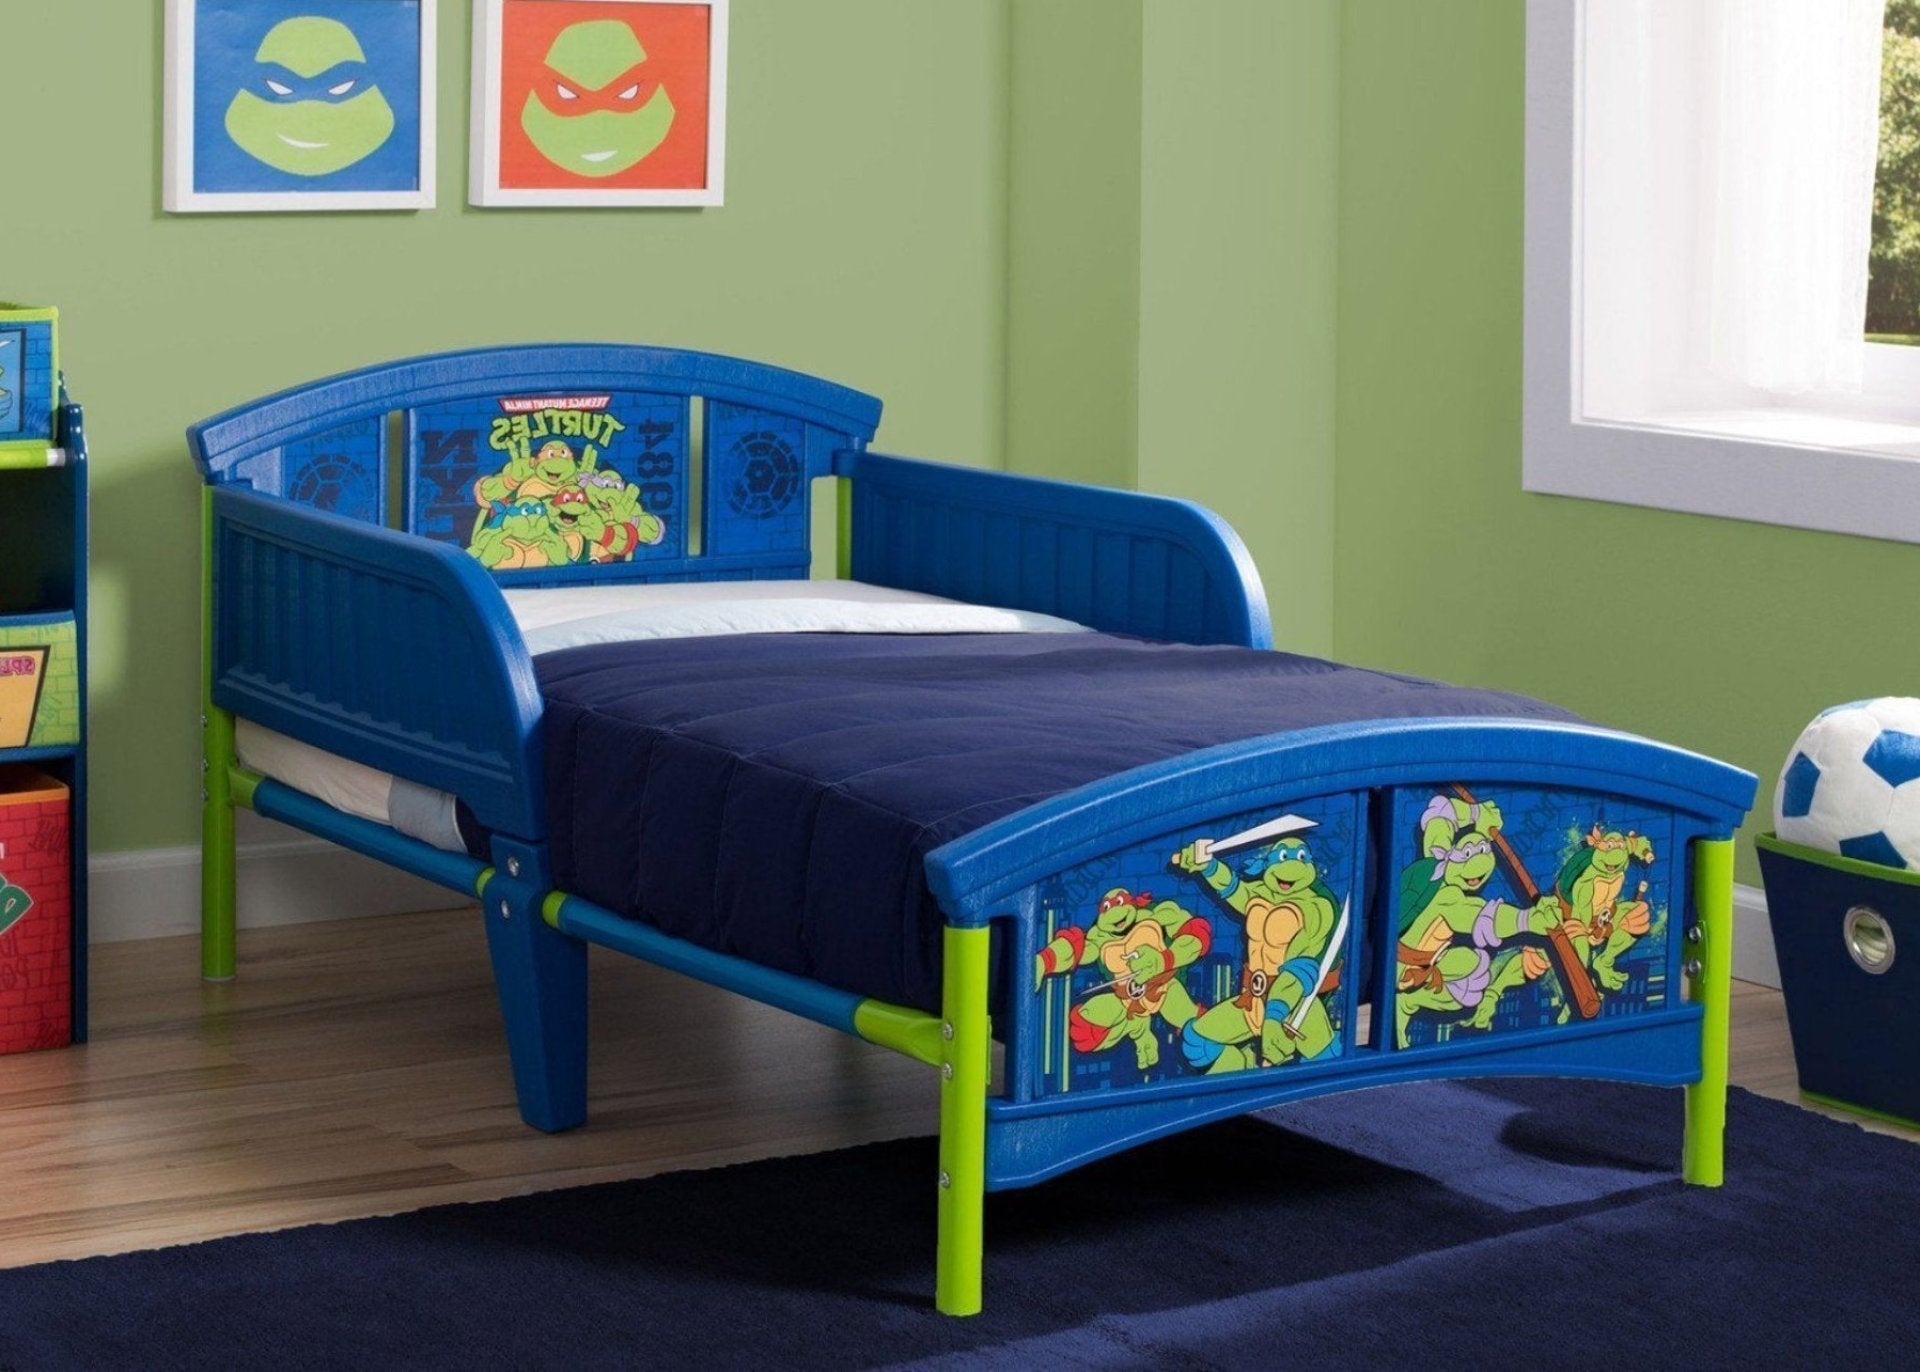 Teenage Mutant Ninja Turtles Plastic Toddler Bed, Hangtag View a2a